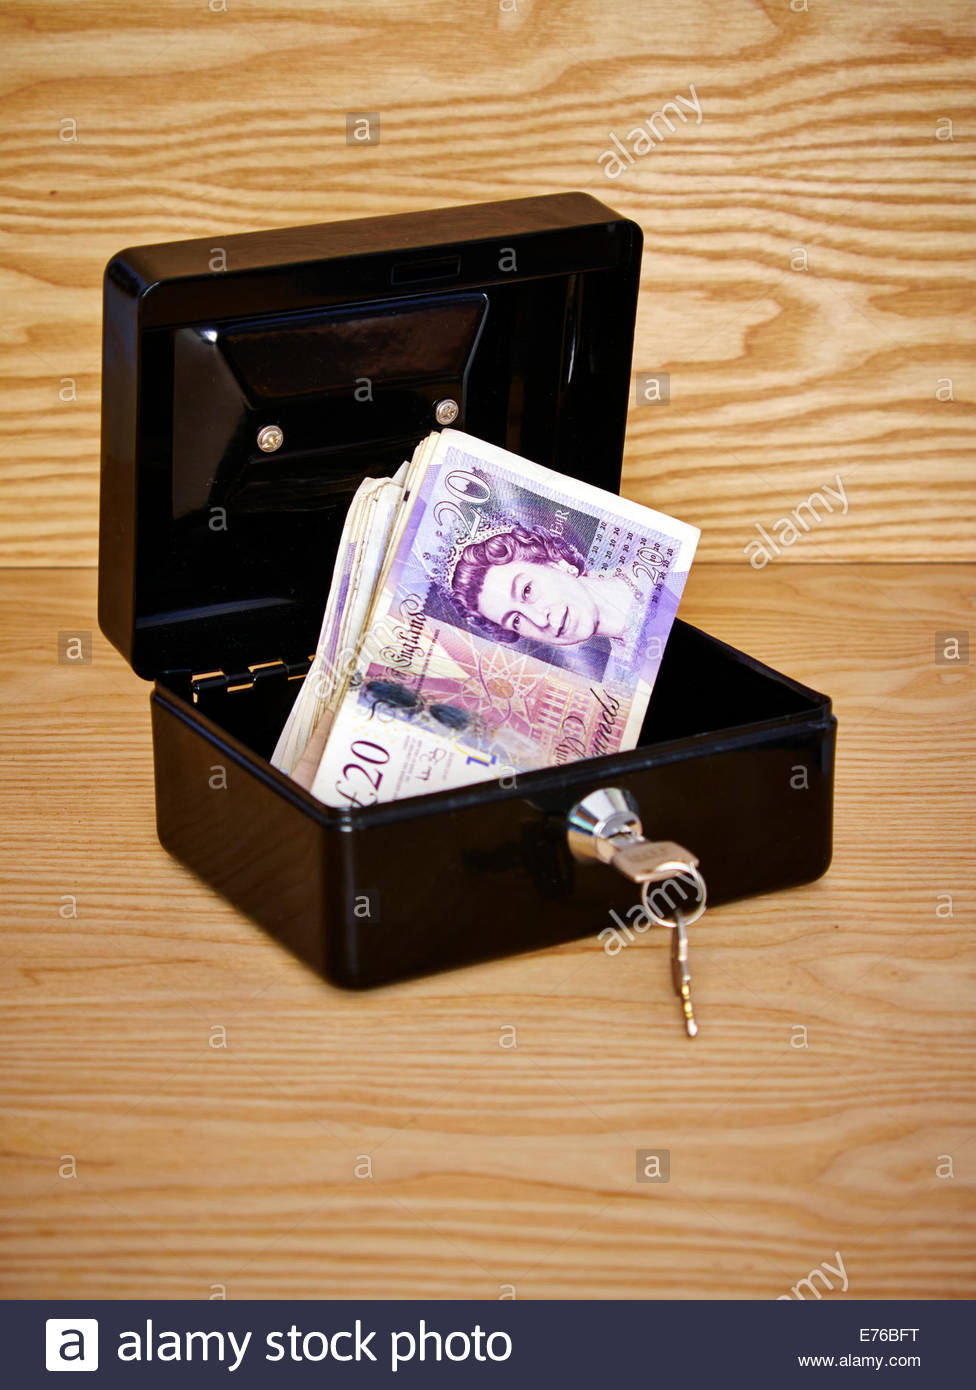 black metal cash box filled with GDP british £20 pound notes - Stock Image